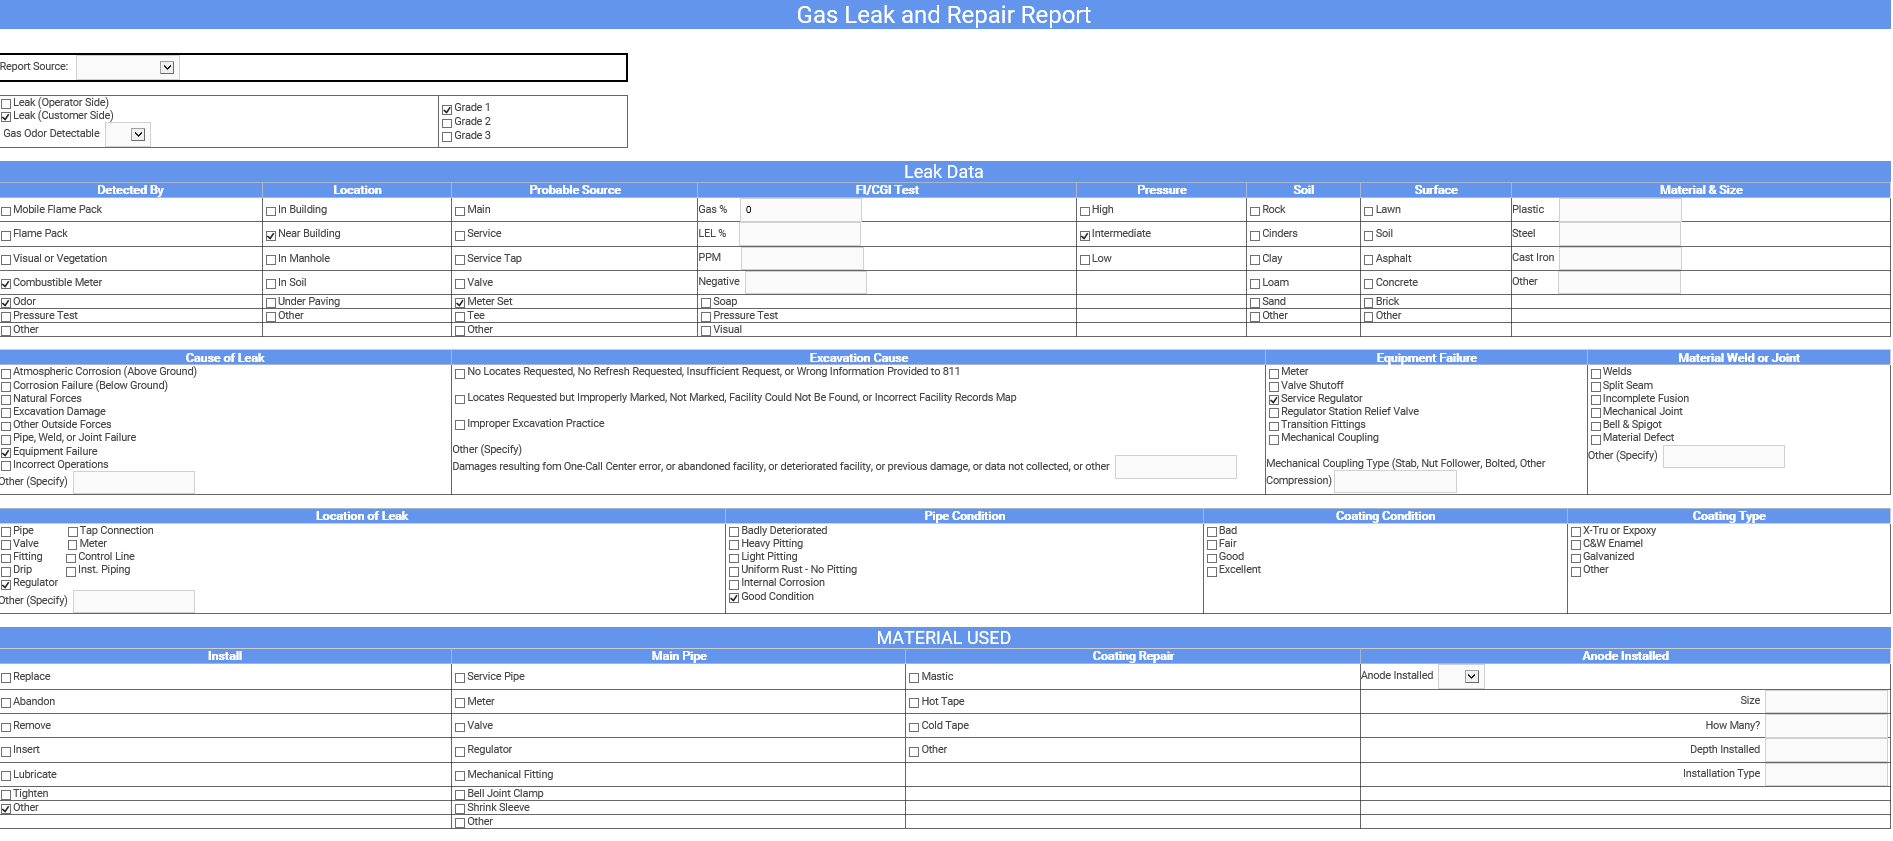 Elements XS  Dynamic Document Form used on a Gas Leak and Repair service order